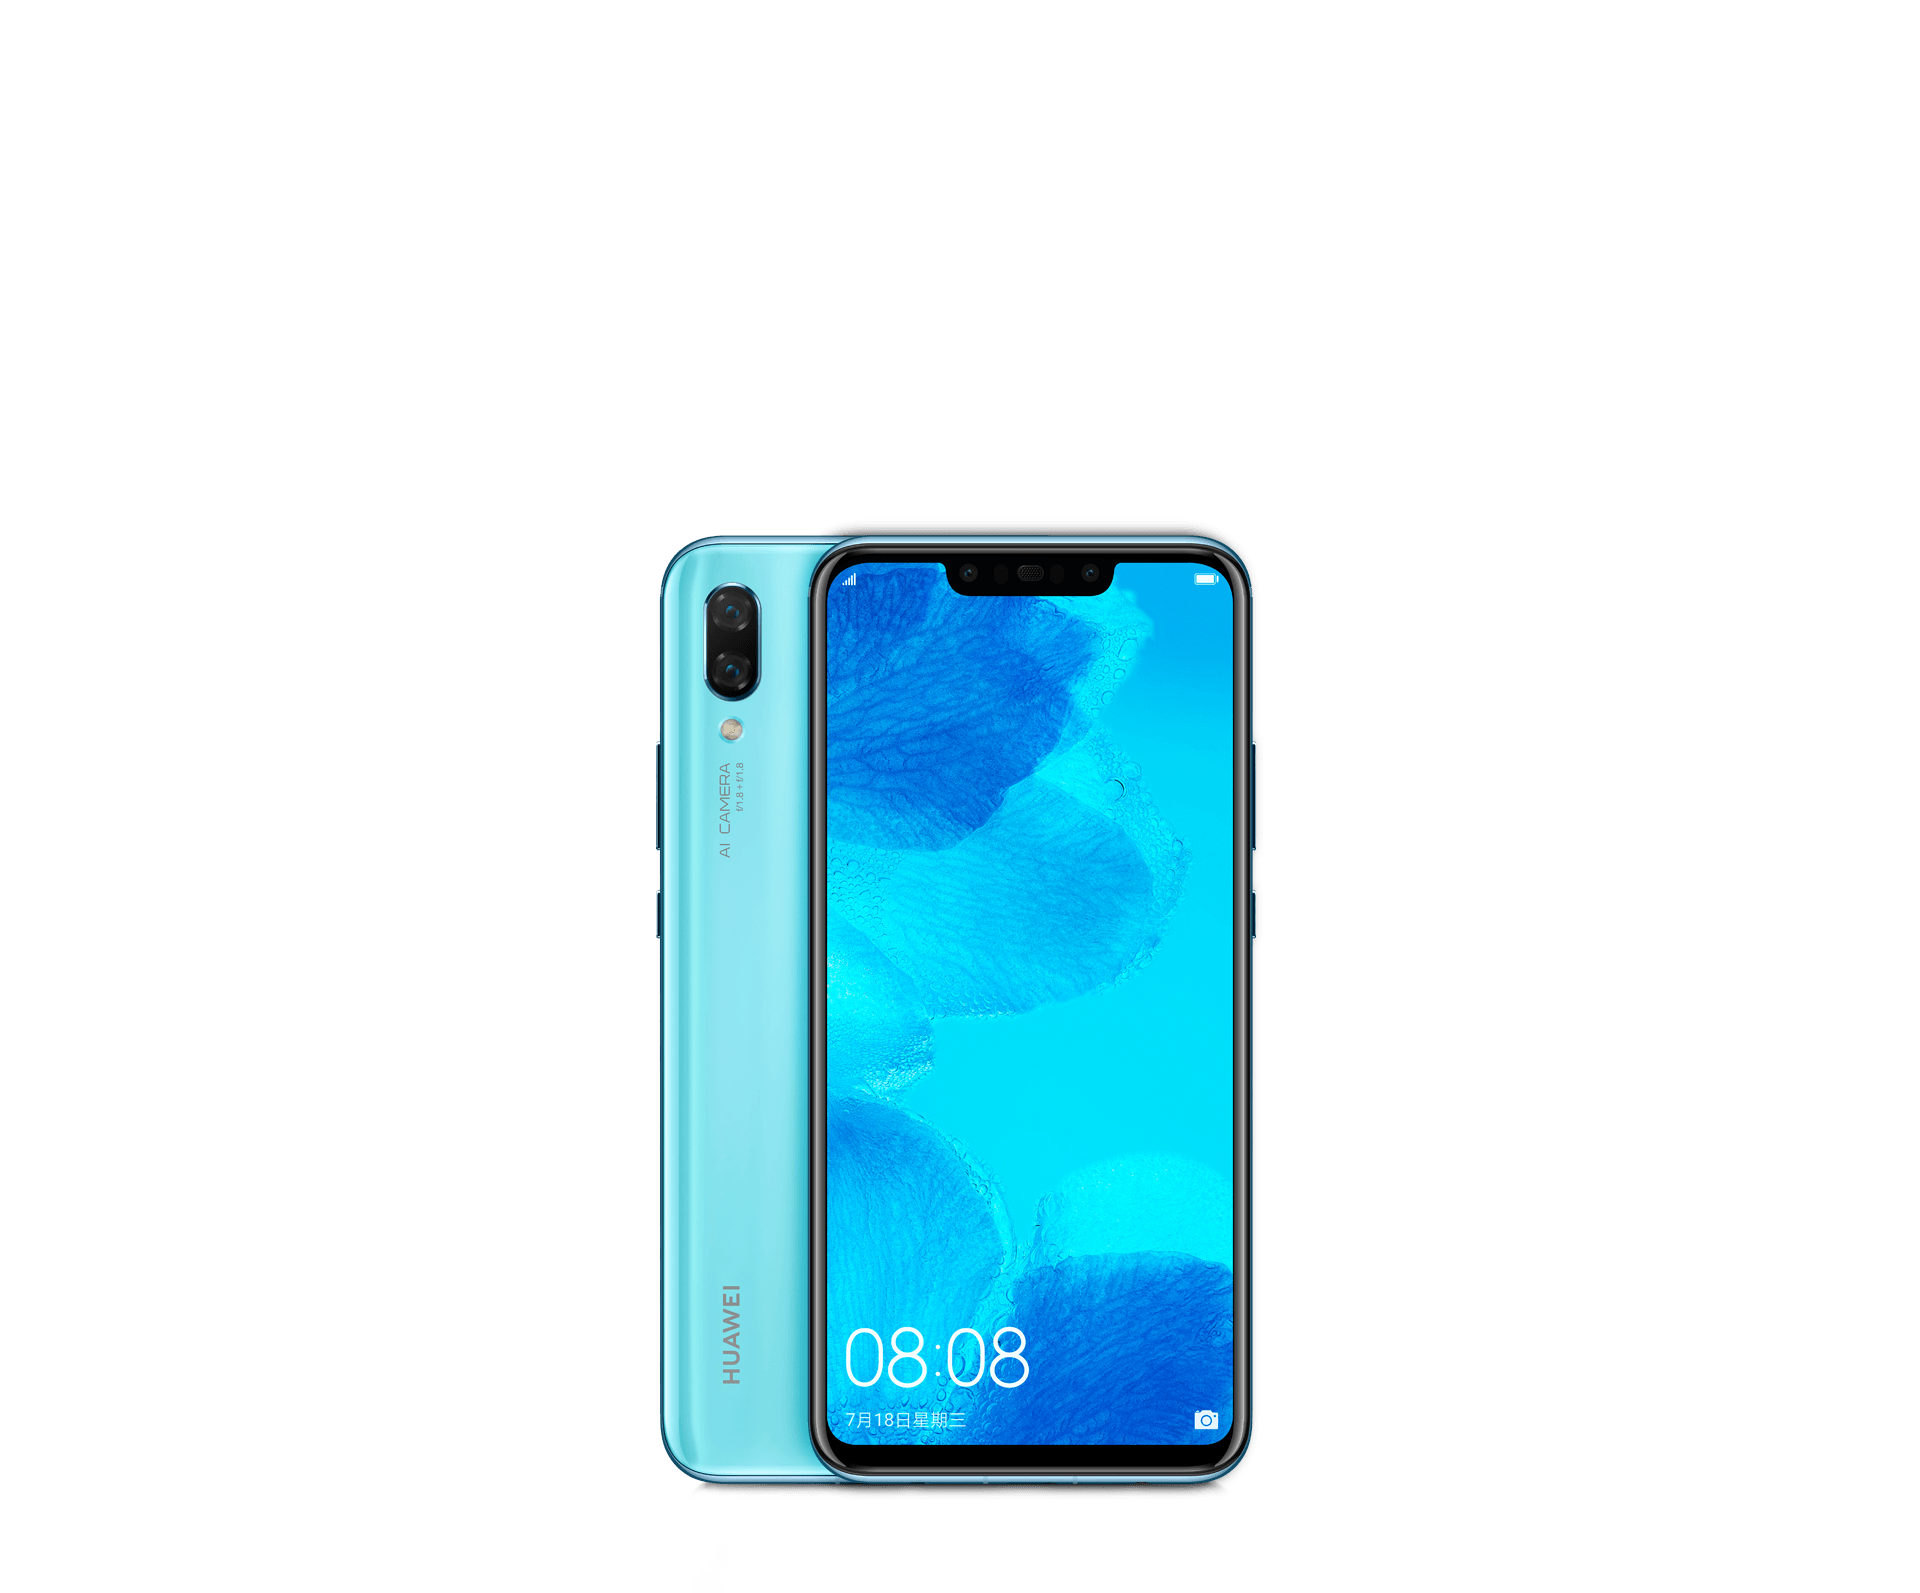 Huawei Nova 3 has four cameras, a Kirin 970 SoC, 6GB of RAM, and an affordable price